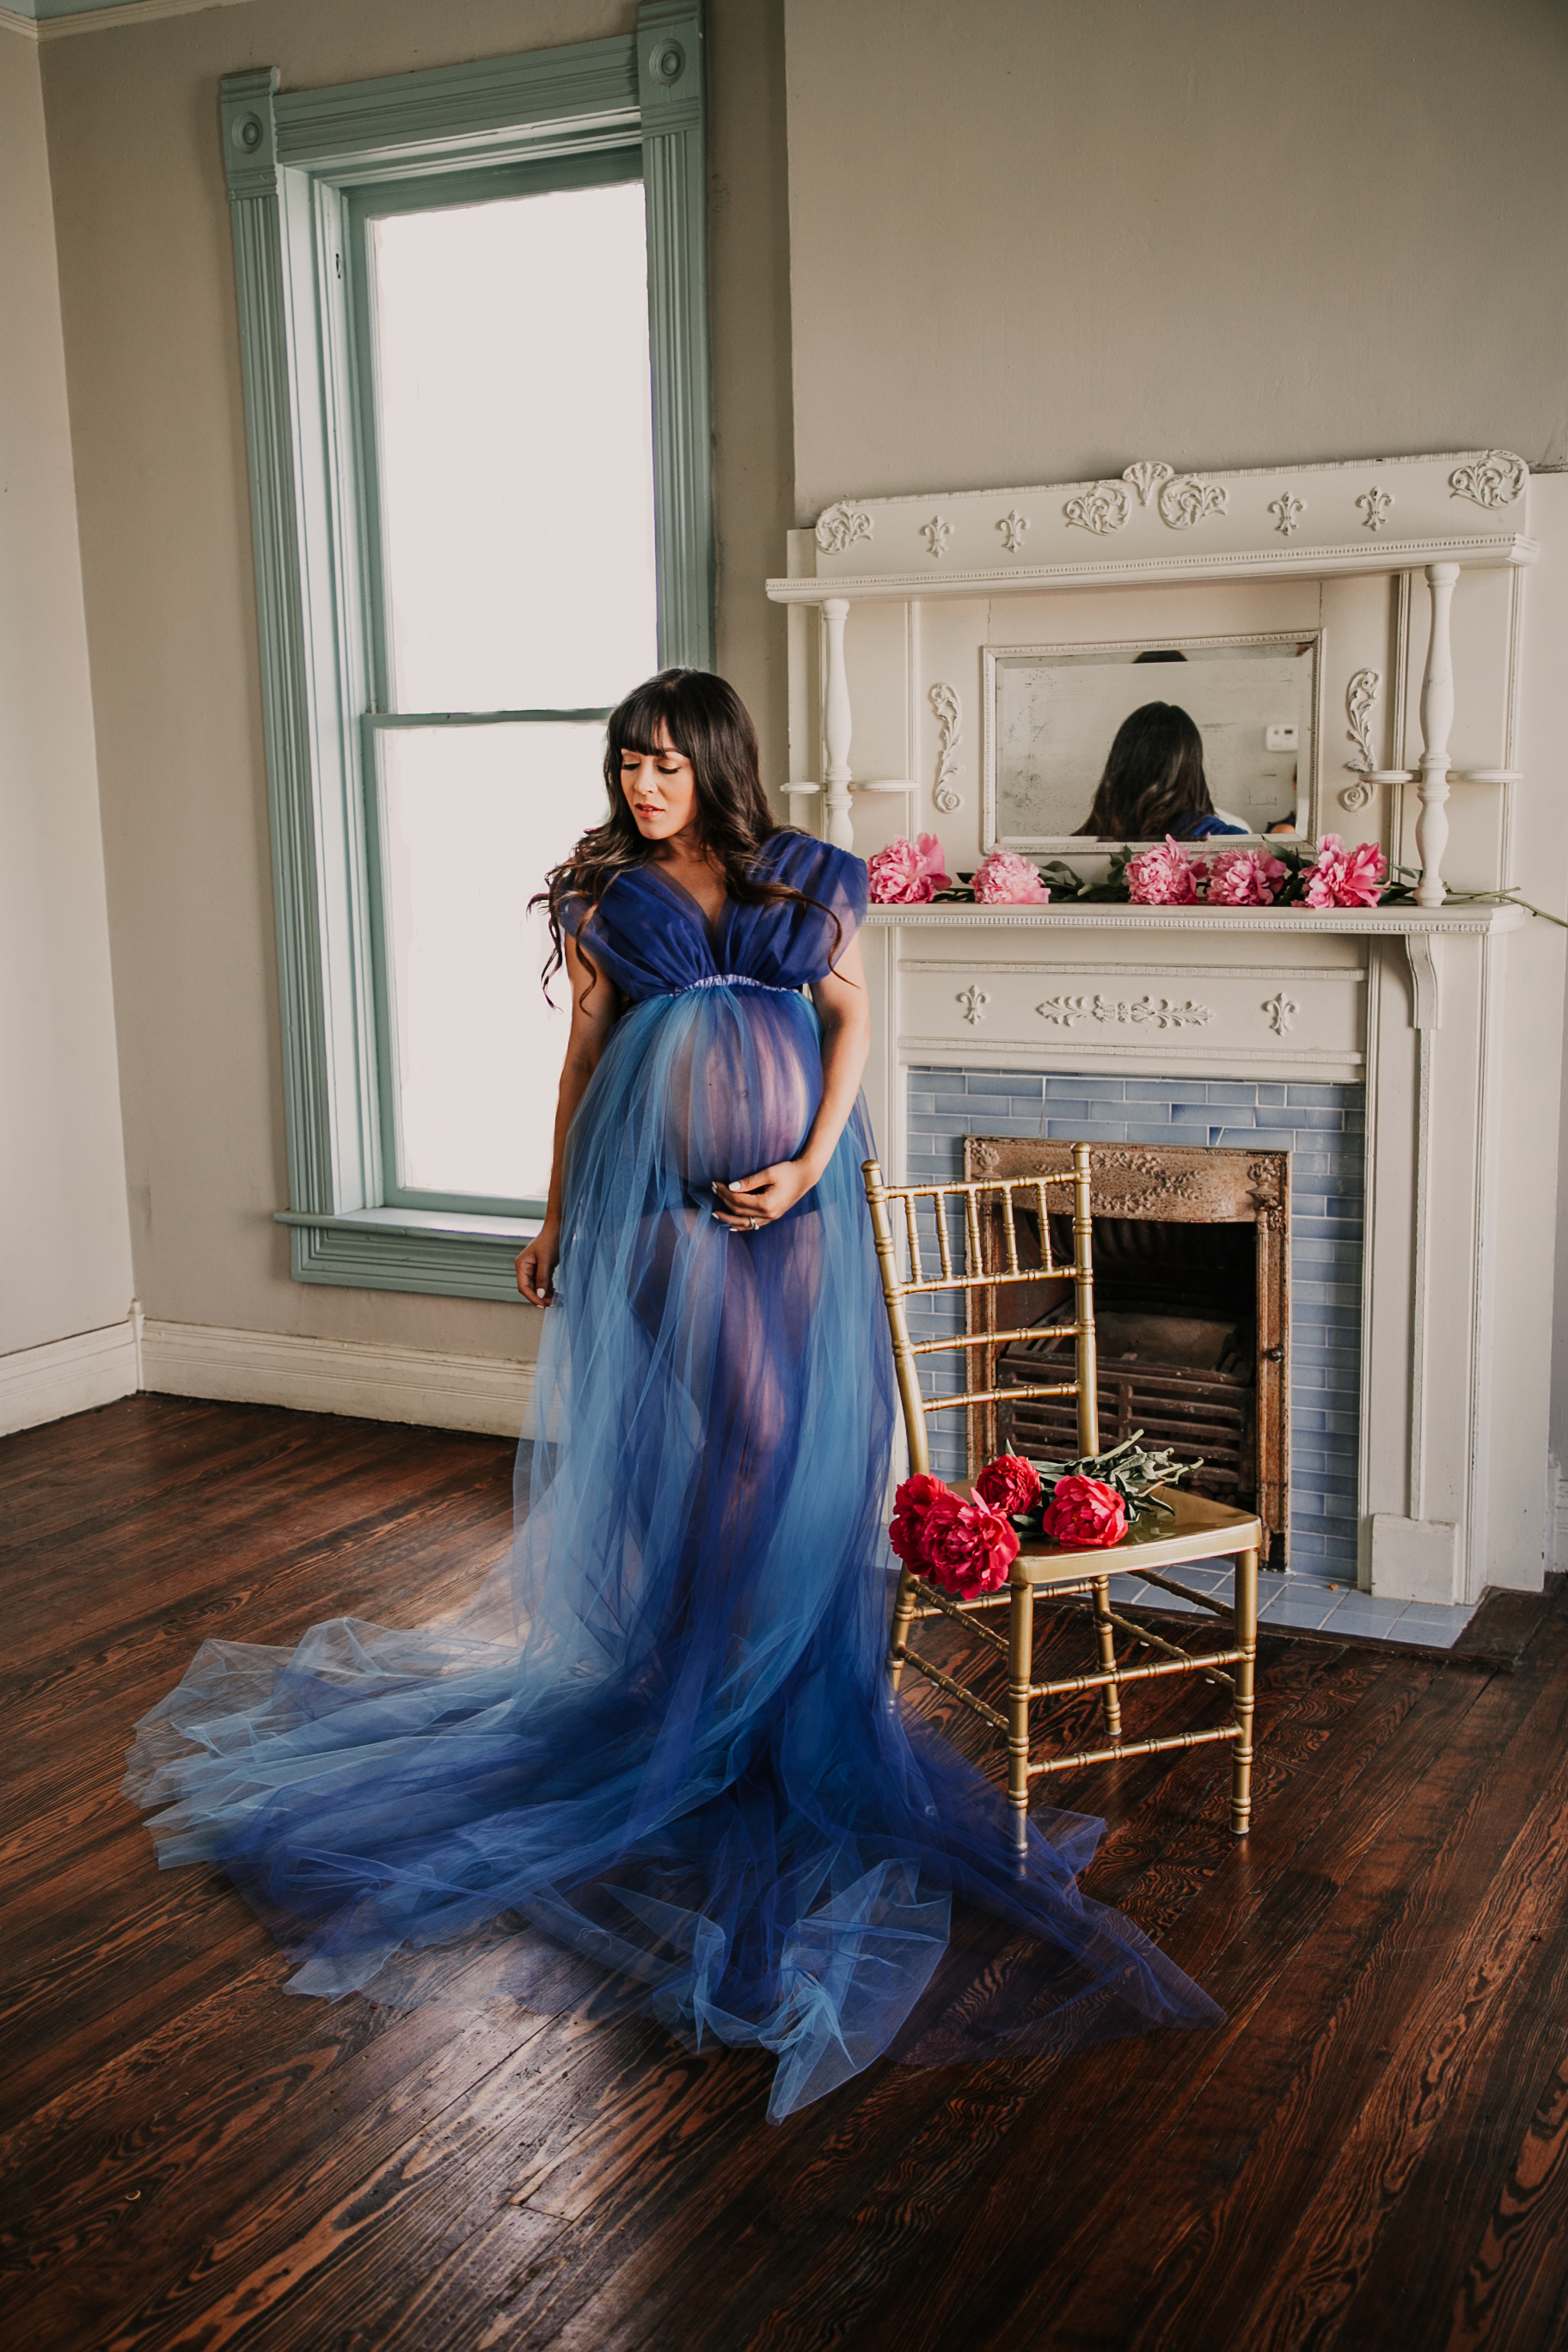 Maternity photos spanglishfashion (8).JPG